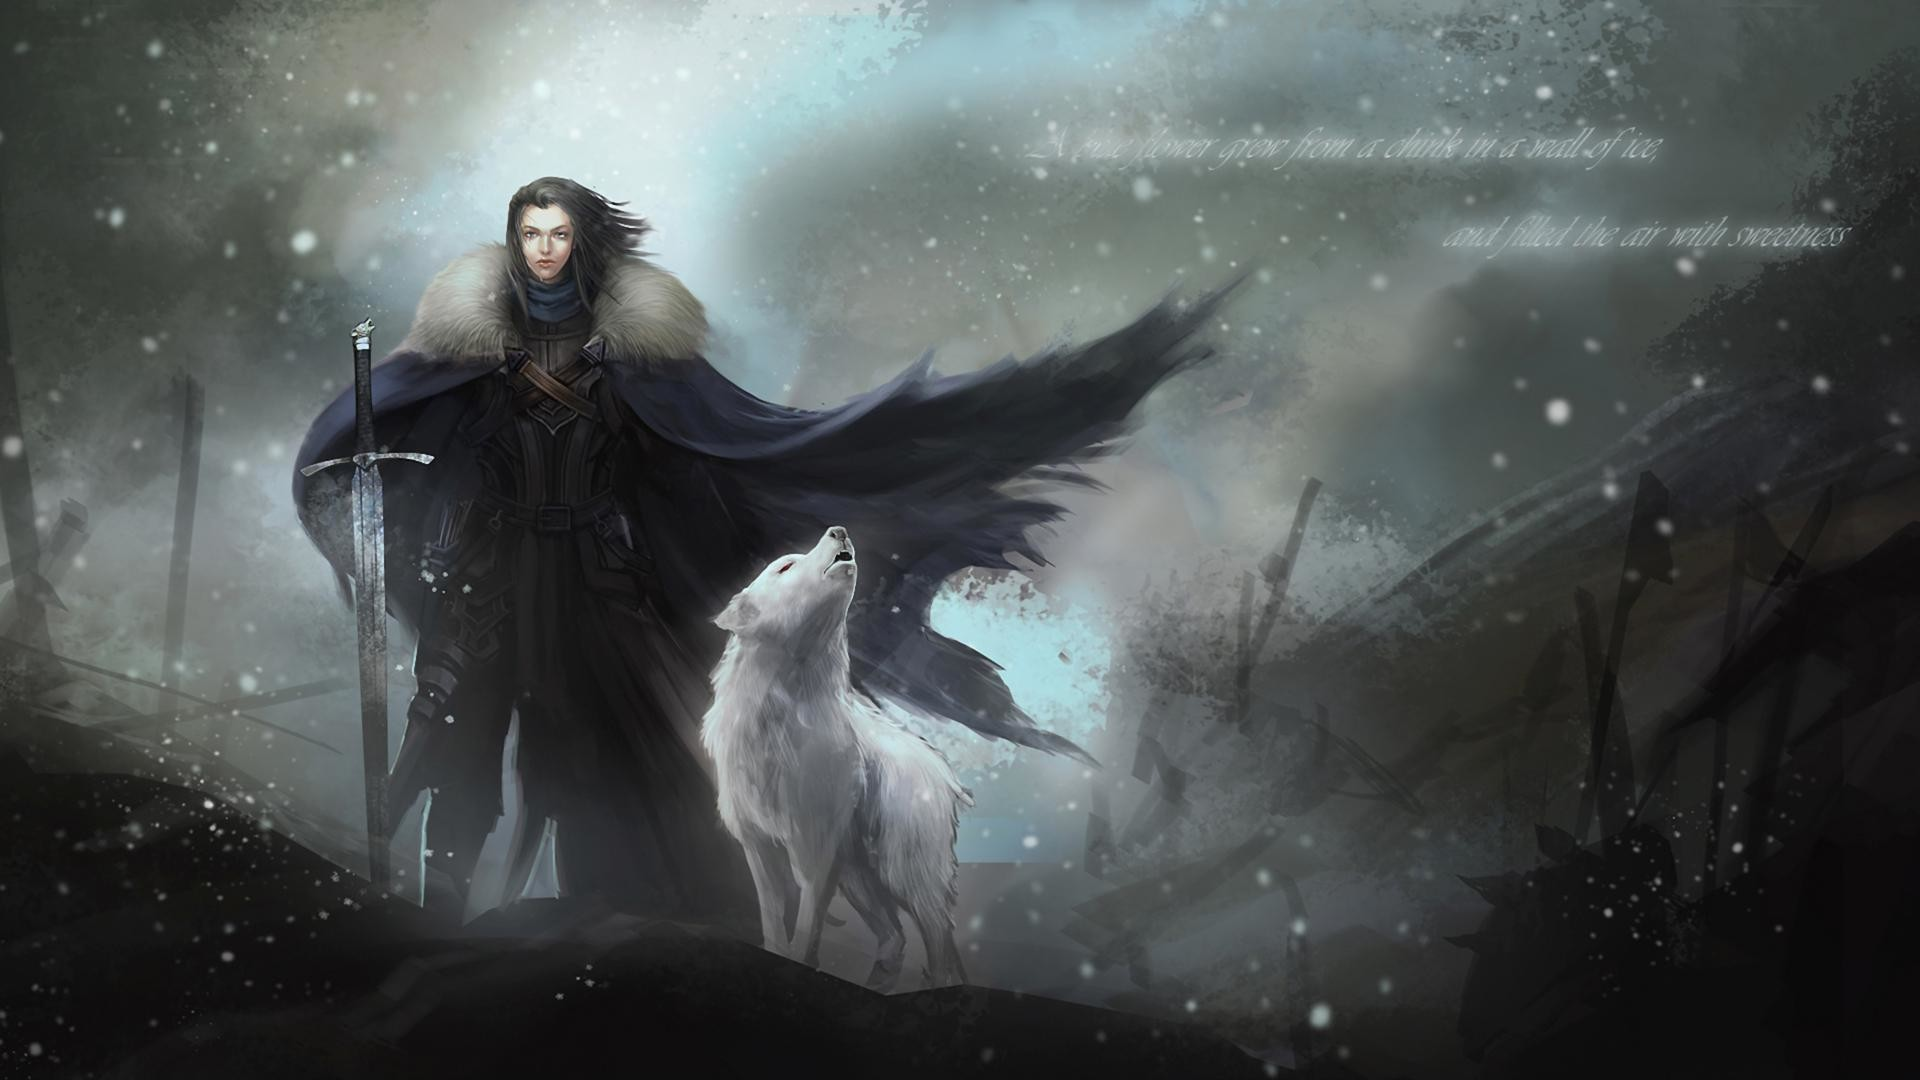 1920x1080 http://staticdn.lovities.com/img/post/719612004/jon-snow-y-fantasma-15507.jpeg  | Winter is coming | Pinterest